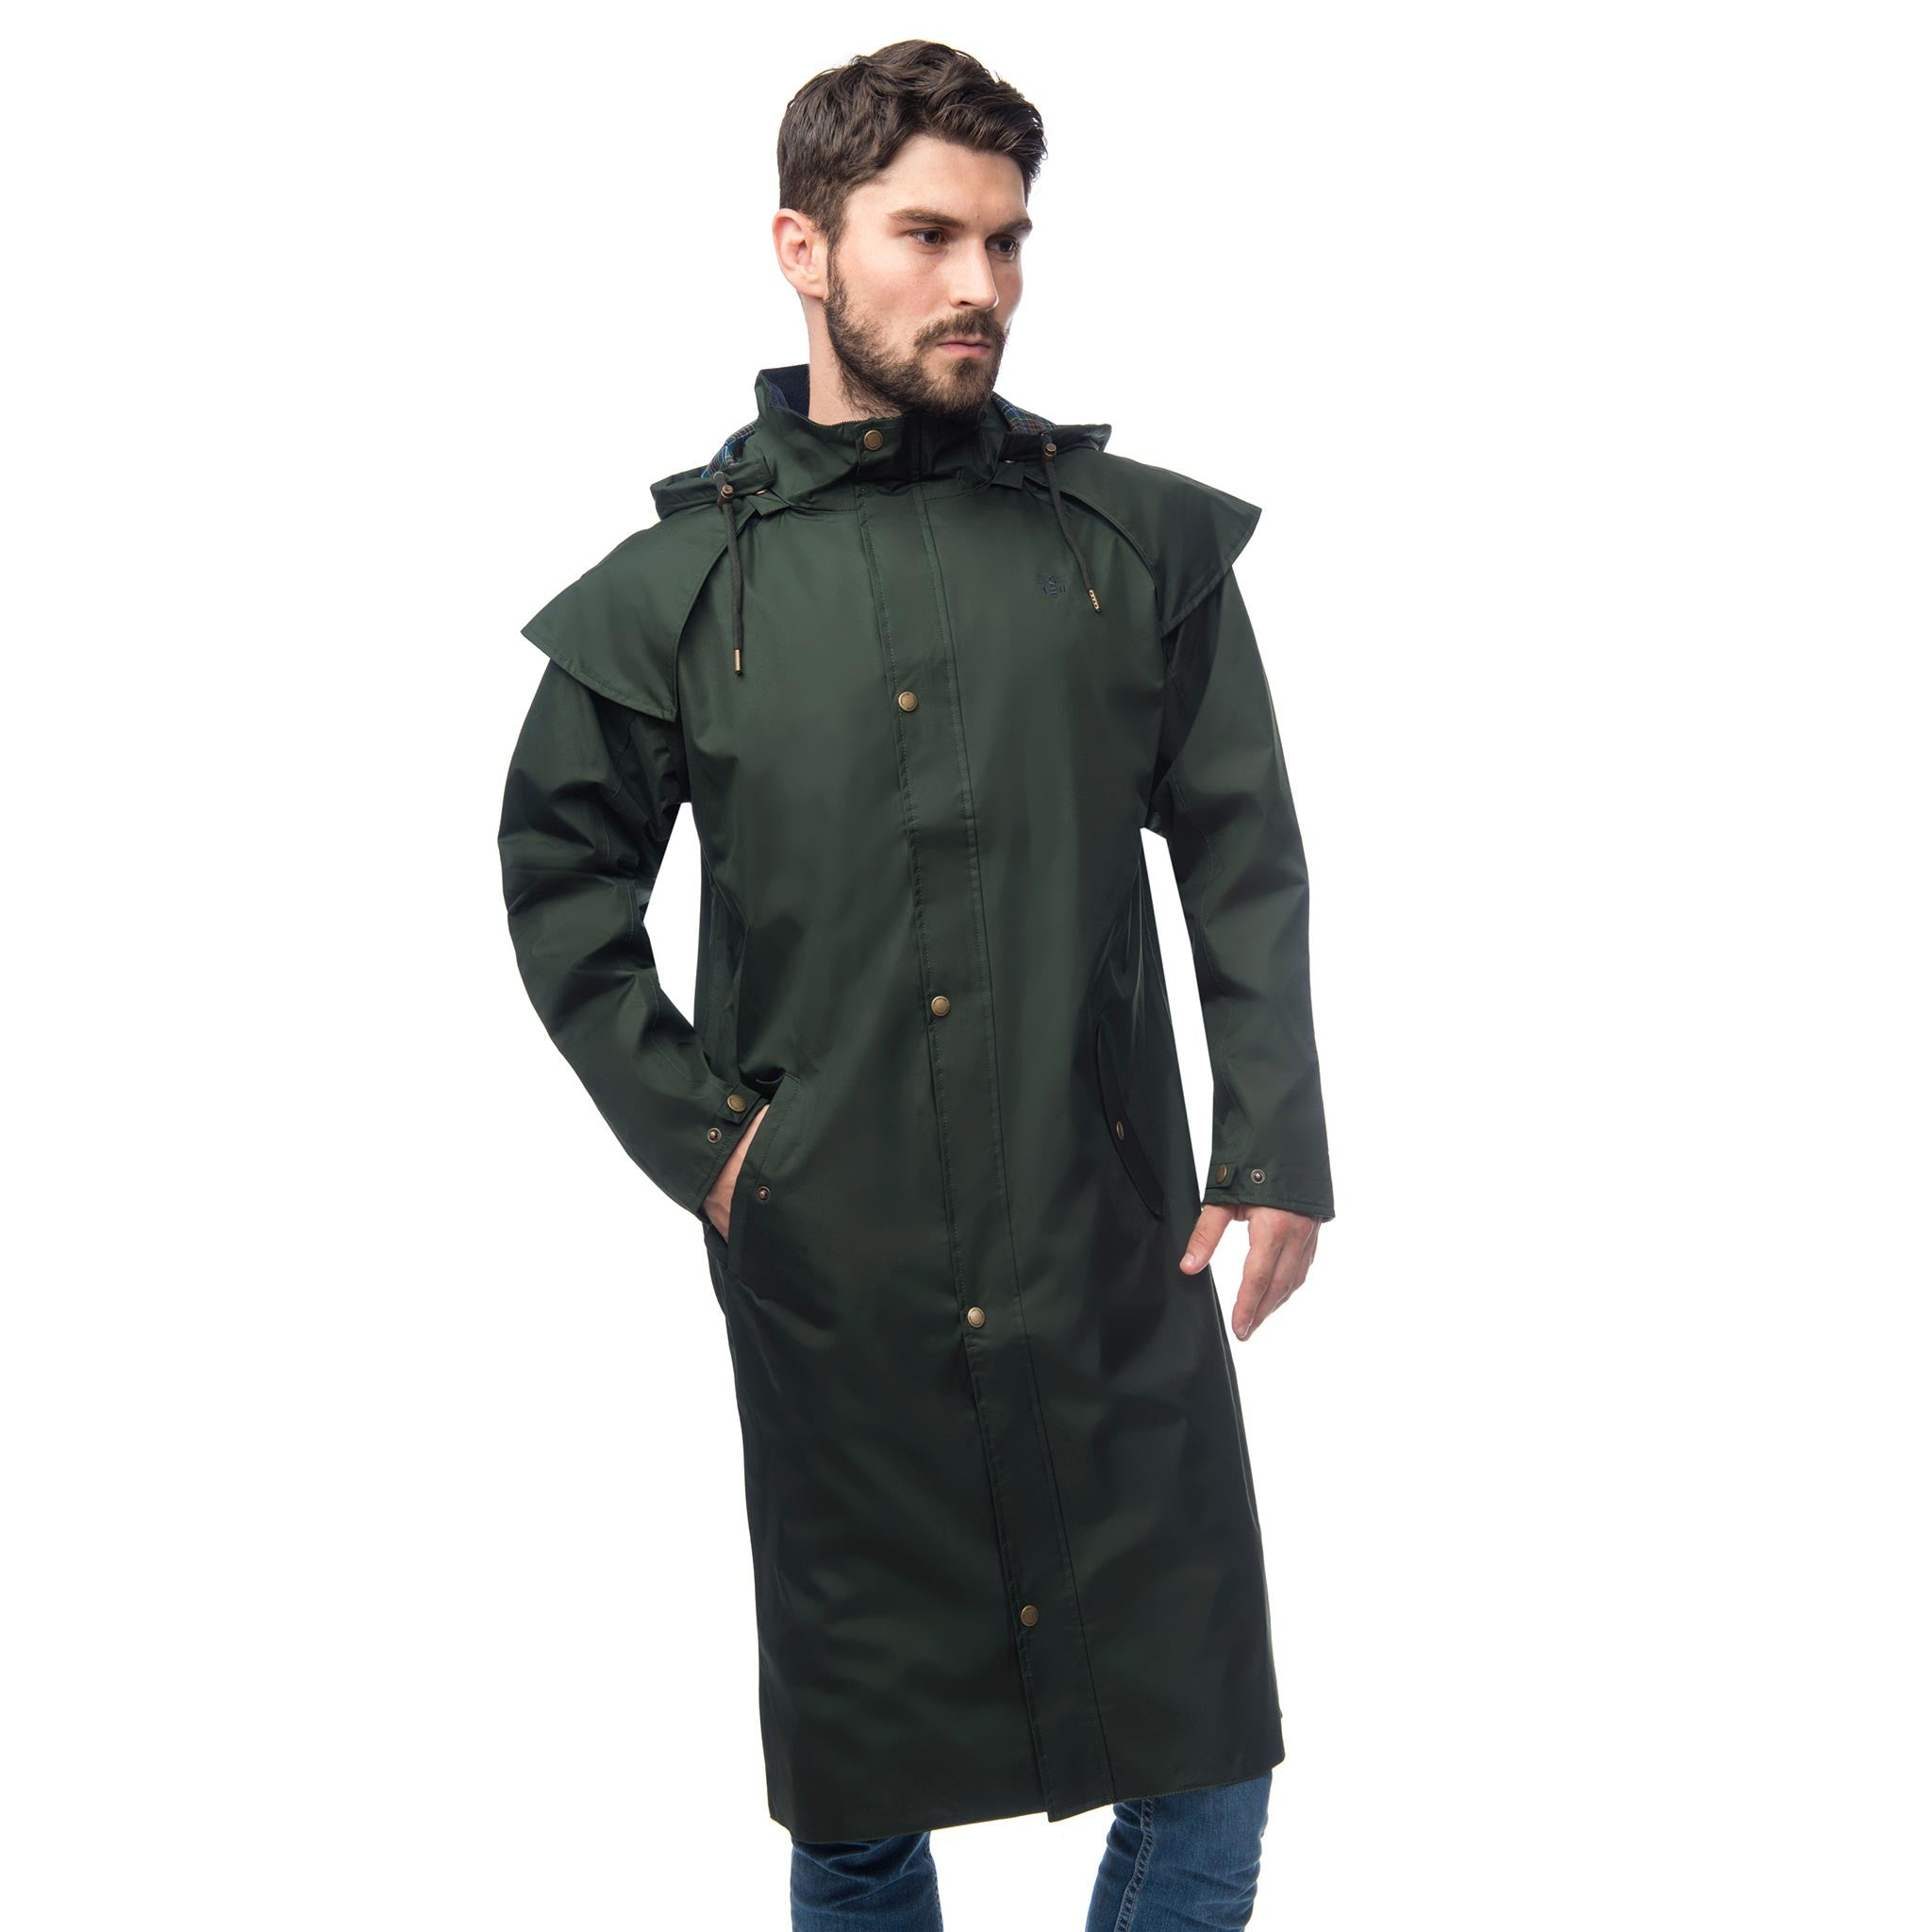 Lighthouse Mens Stockman Full Length Waterproof Rain Coat in green.  Zipped and buttoned. Hood down. Hands in pockets.